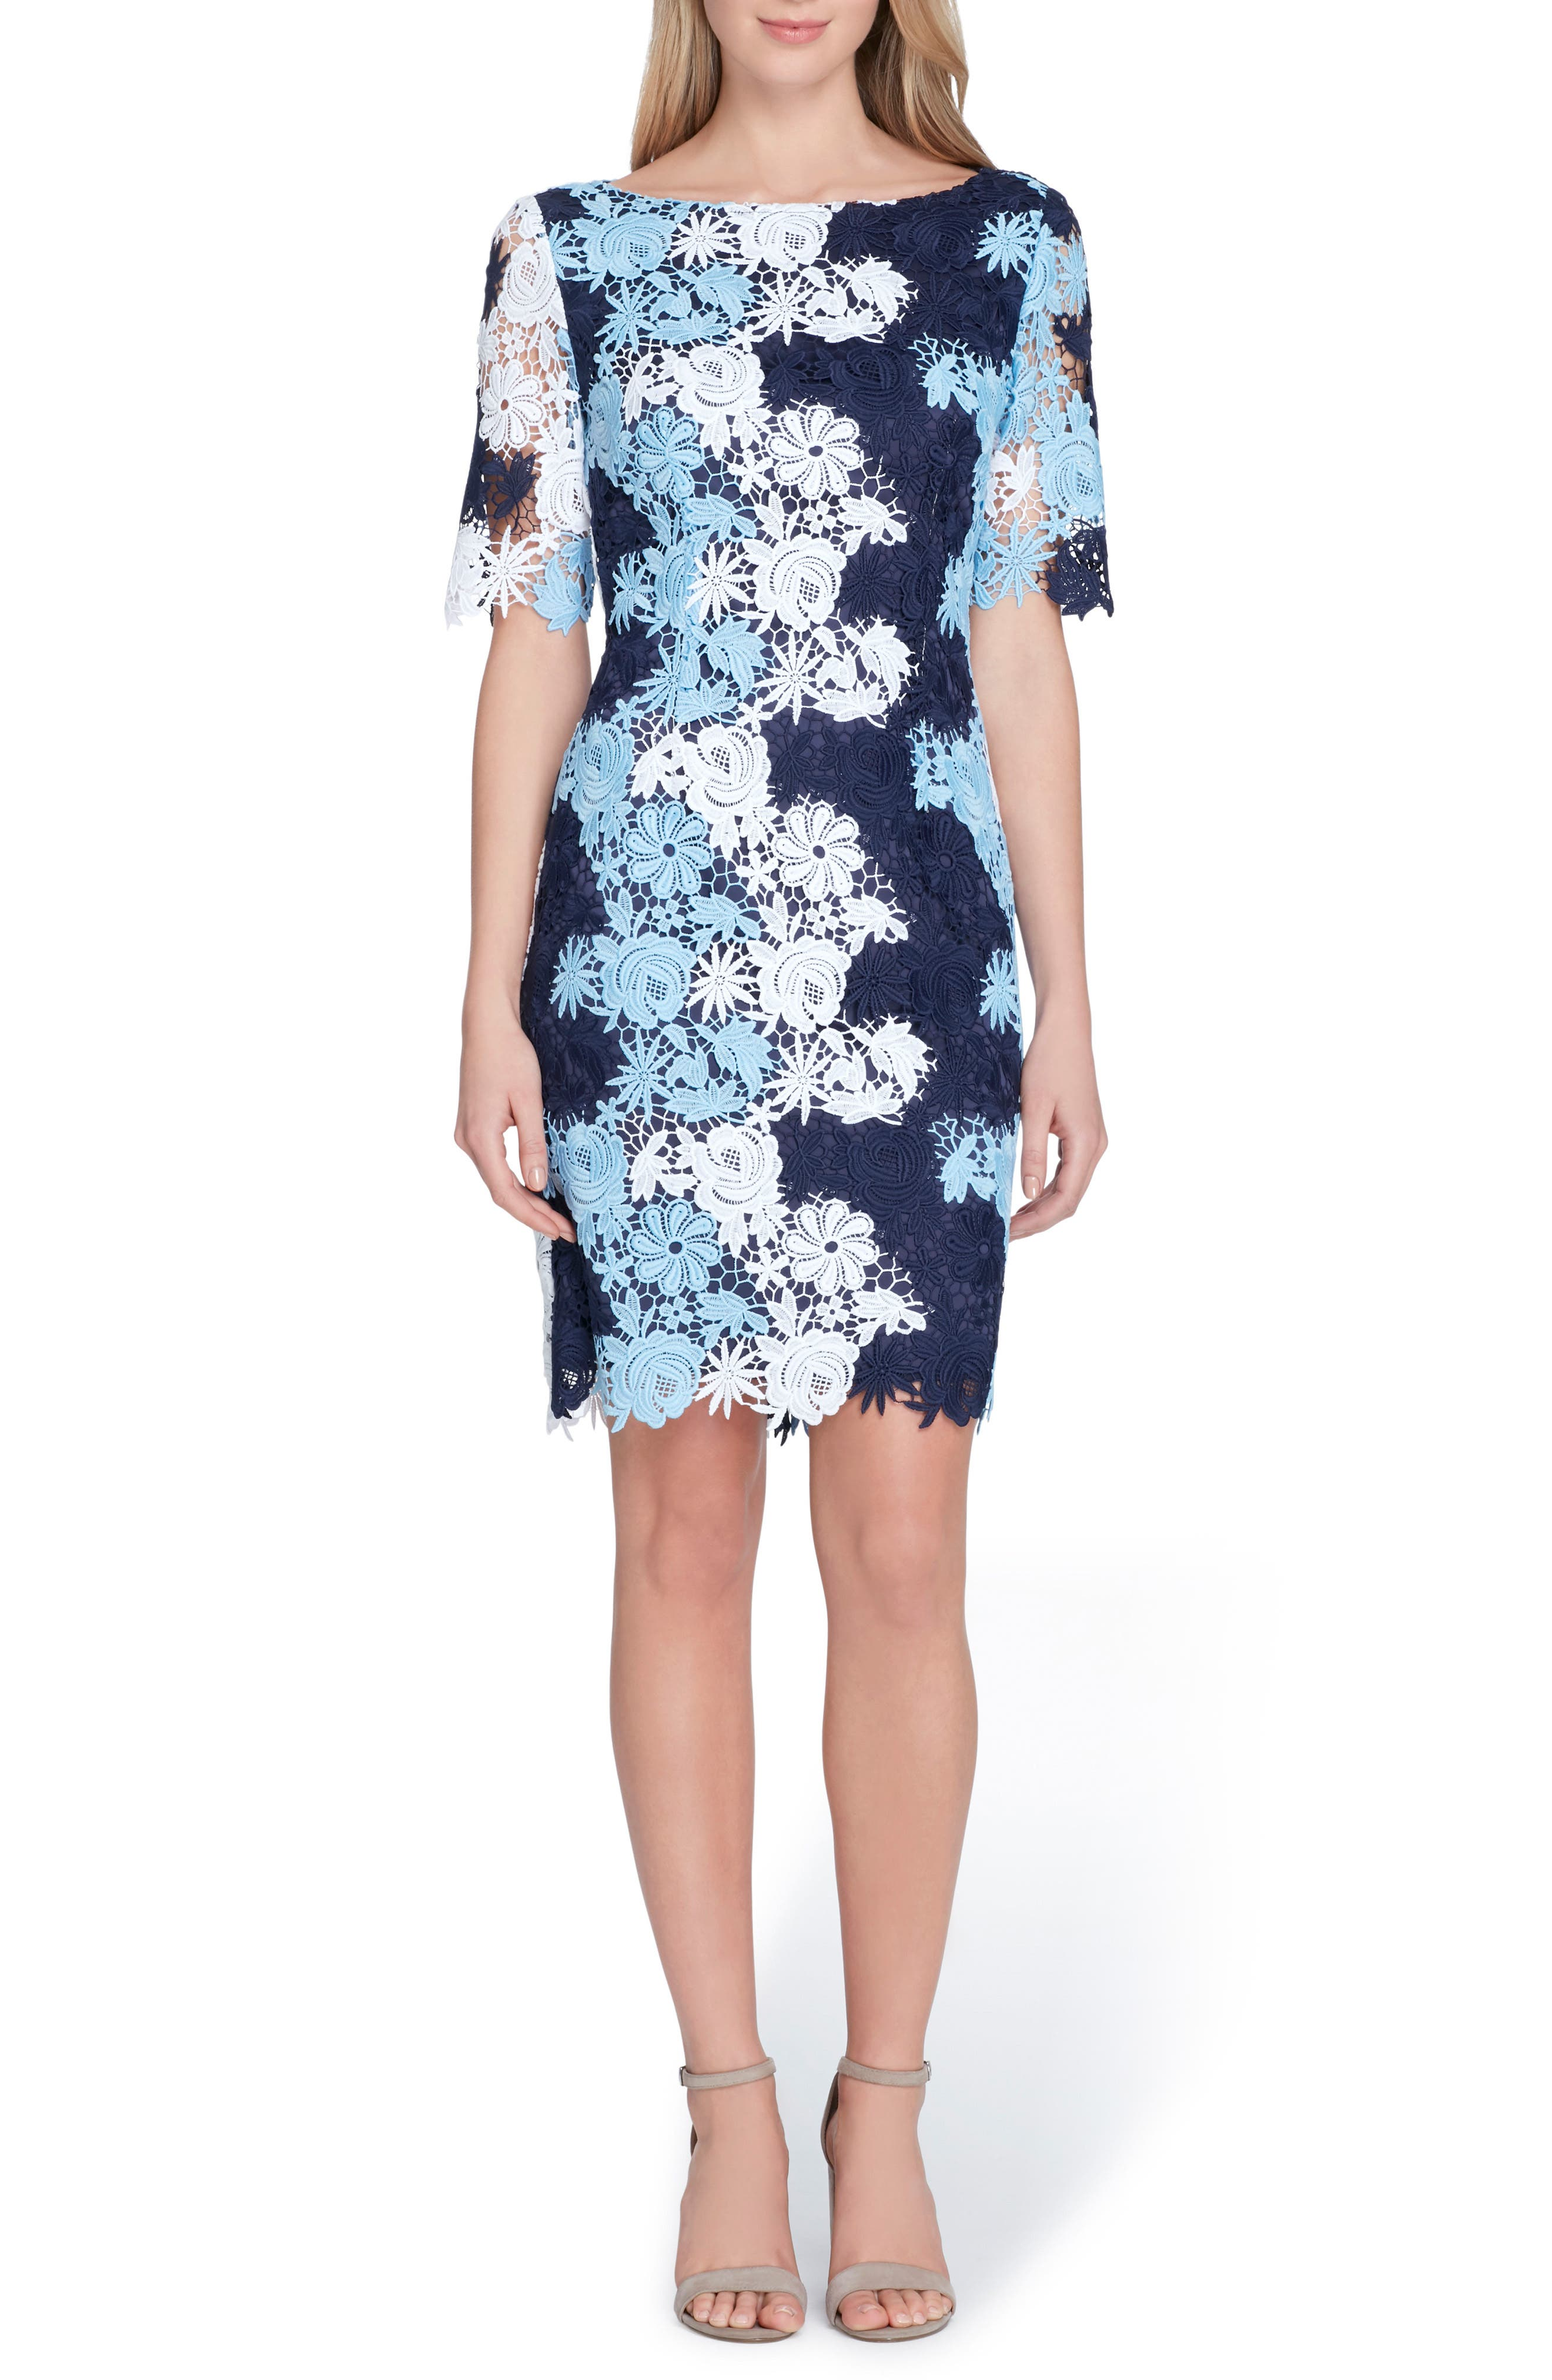 Multicolor Lace Sheath Dress,                         Main,                         color, Navy/ Sky/ Pale Blue